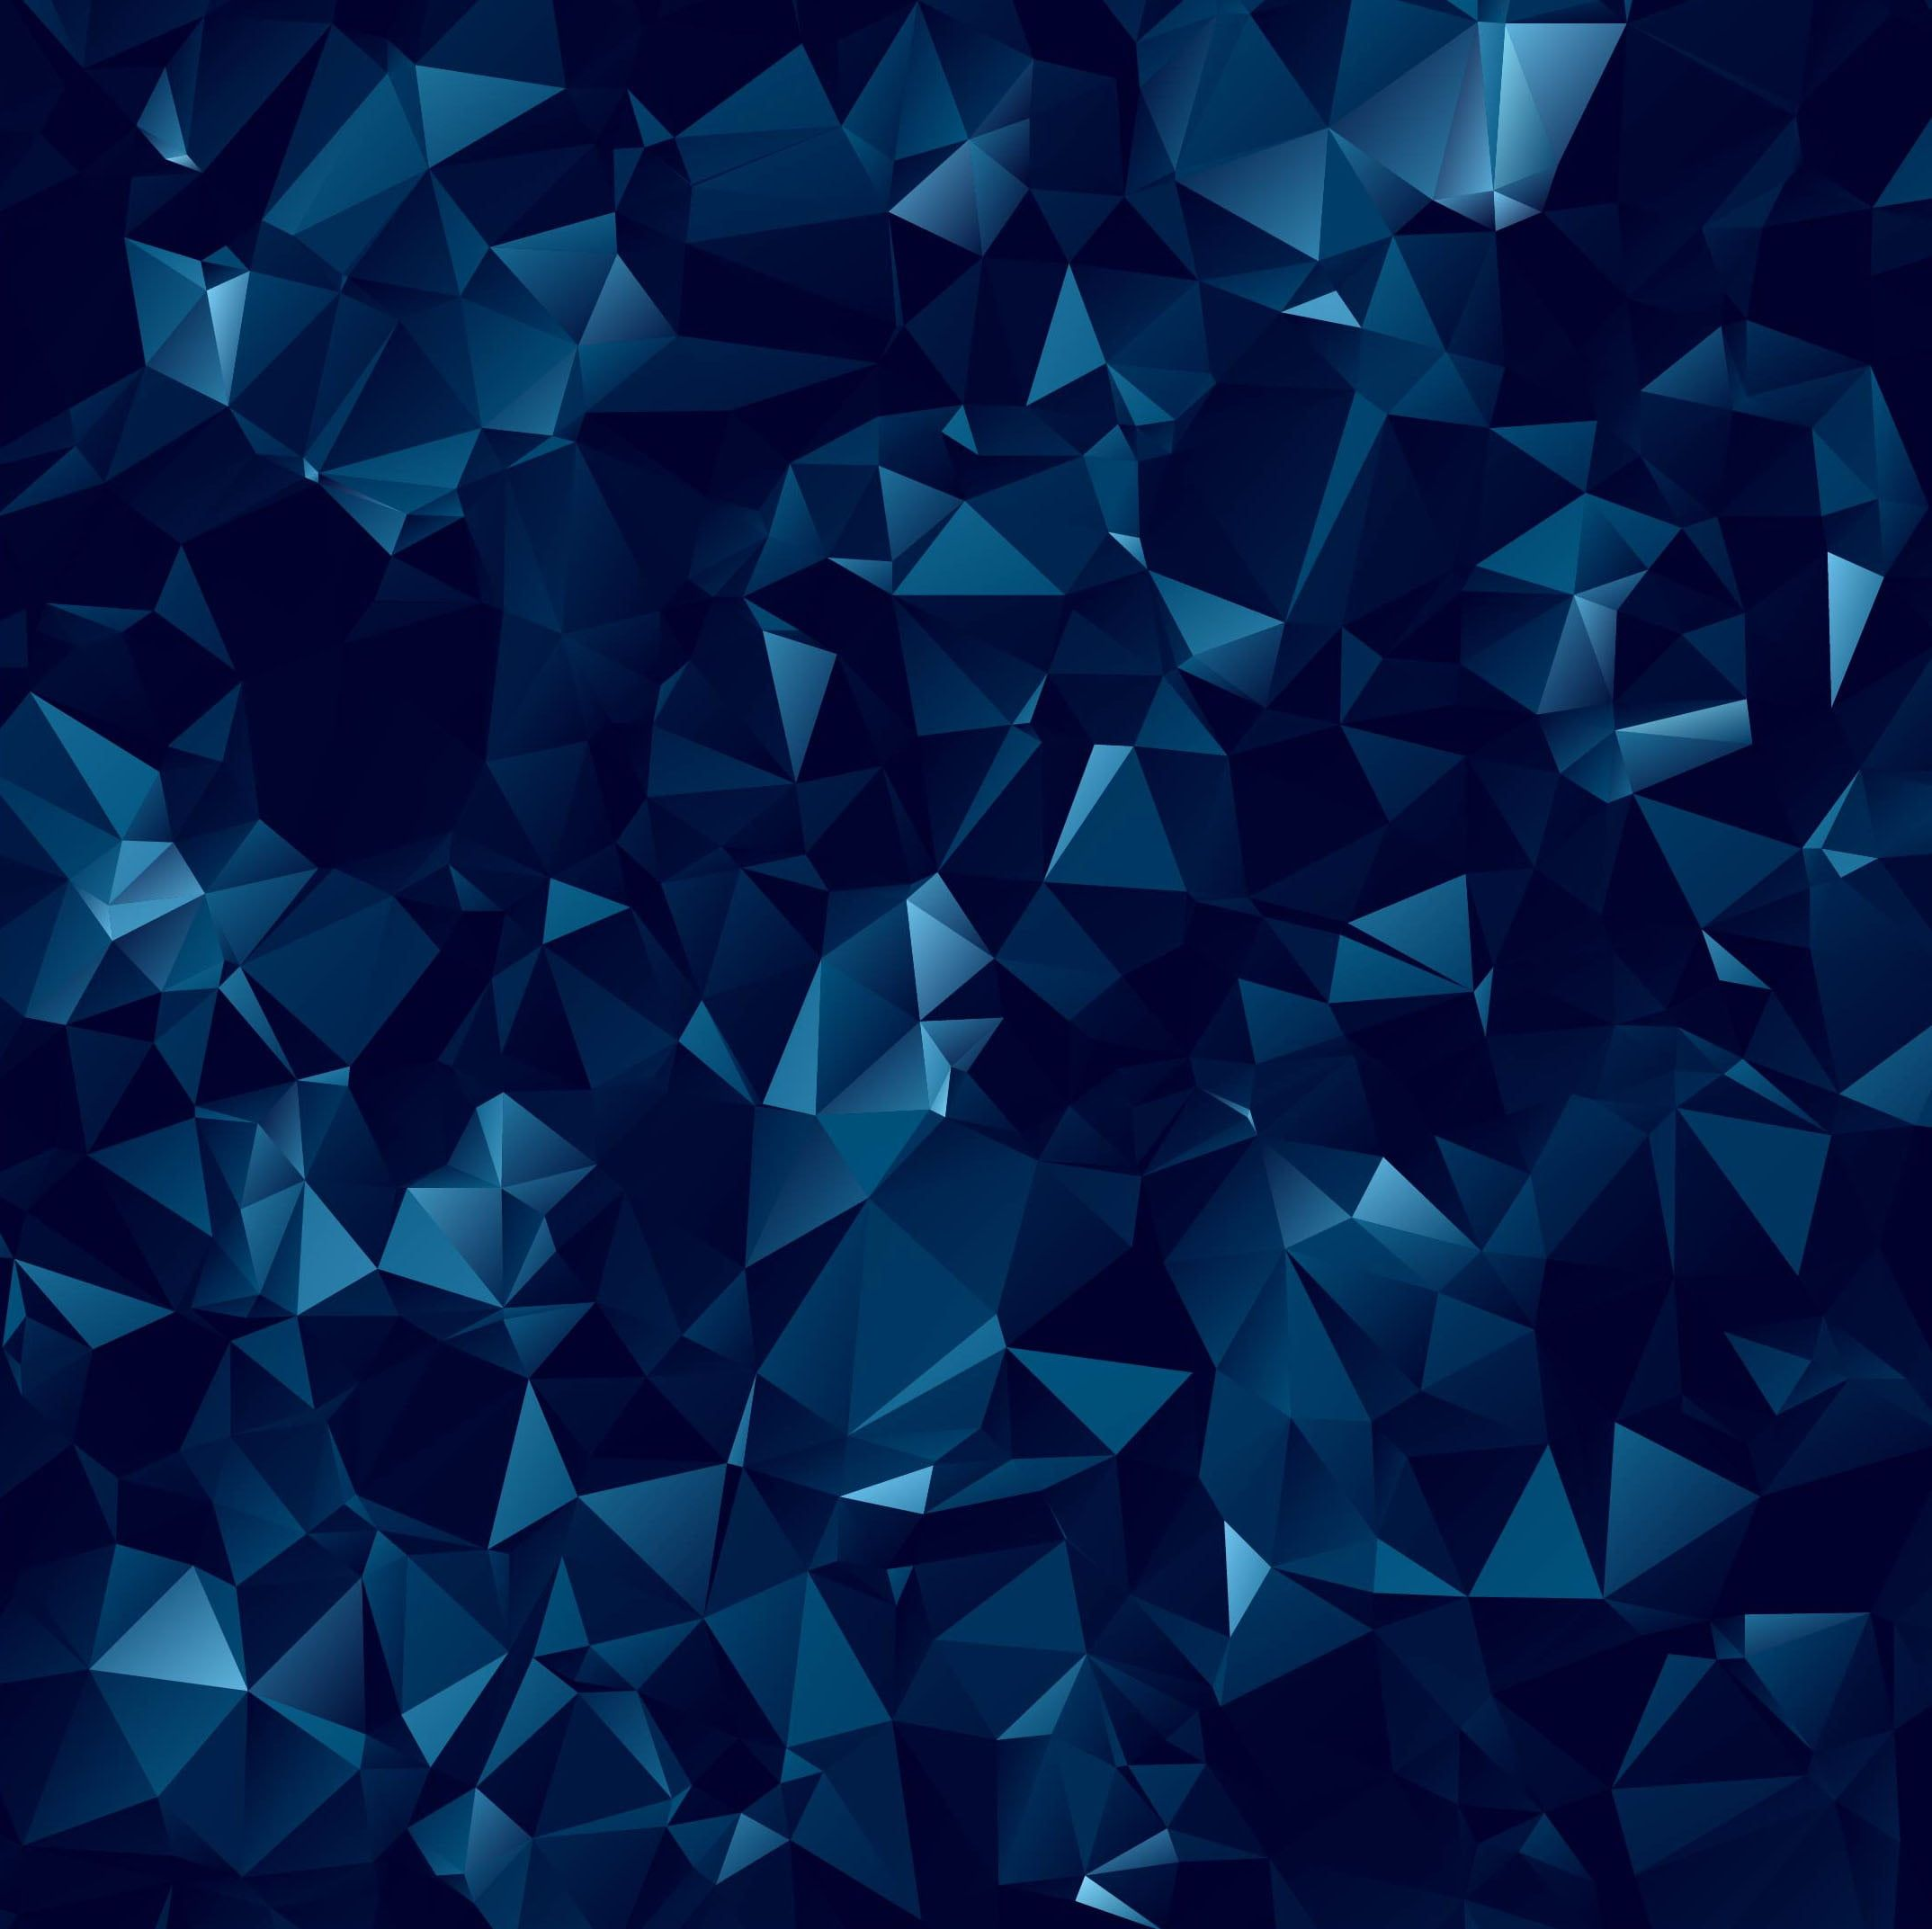 Blue Geometric Shape Wallpaper Abstraction Abstract Dark Geometry Figure Blue Background Poly Geometric Shapes Wallpaper Abstract Wallpaper Backgrounds